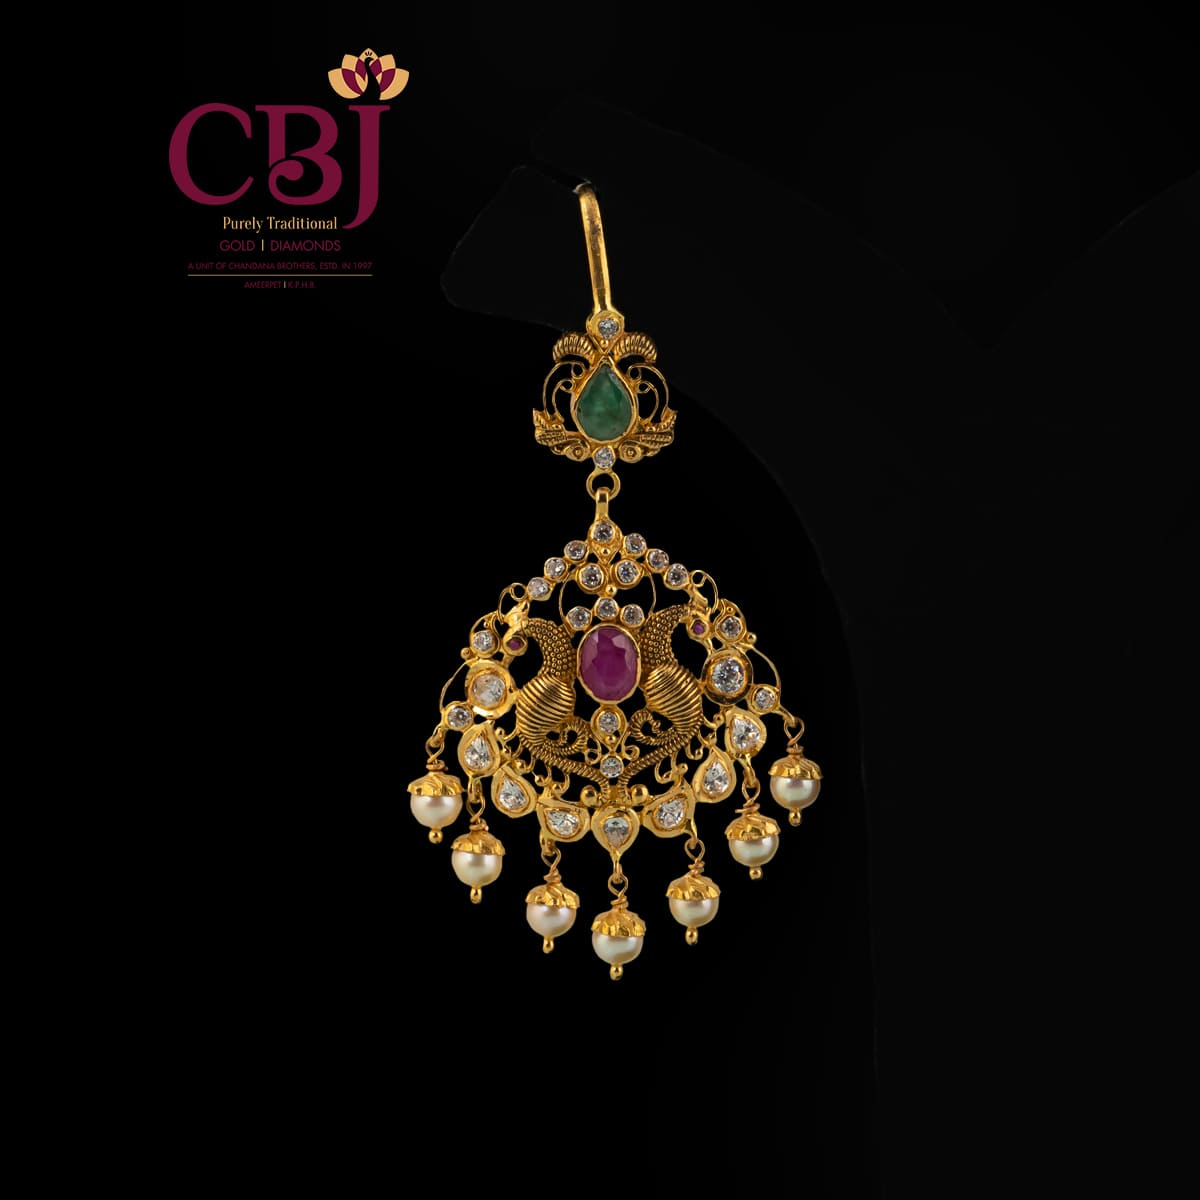 Antique Tikka featuring a peacock design, bejewelled with cz stones.